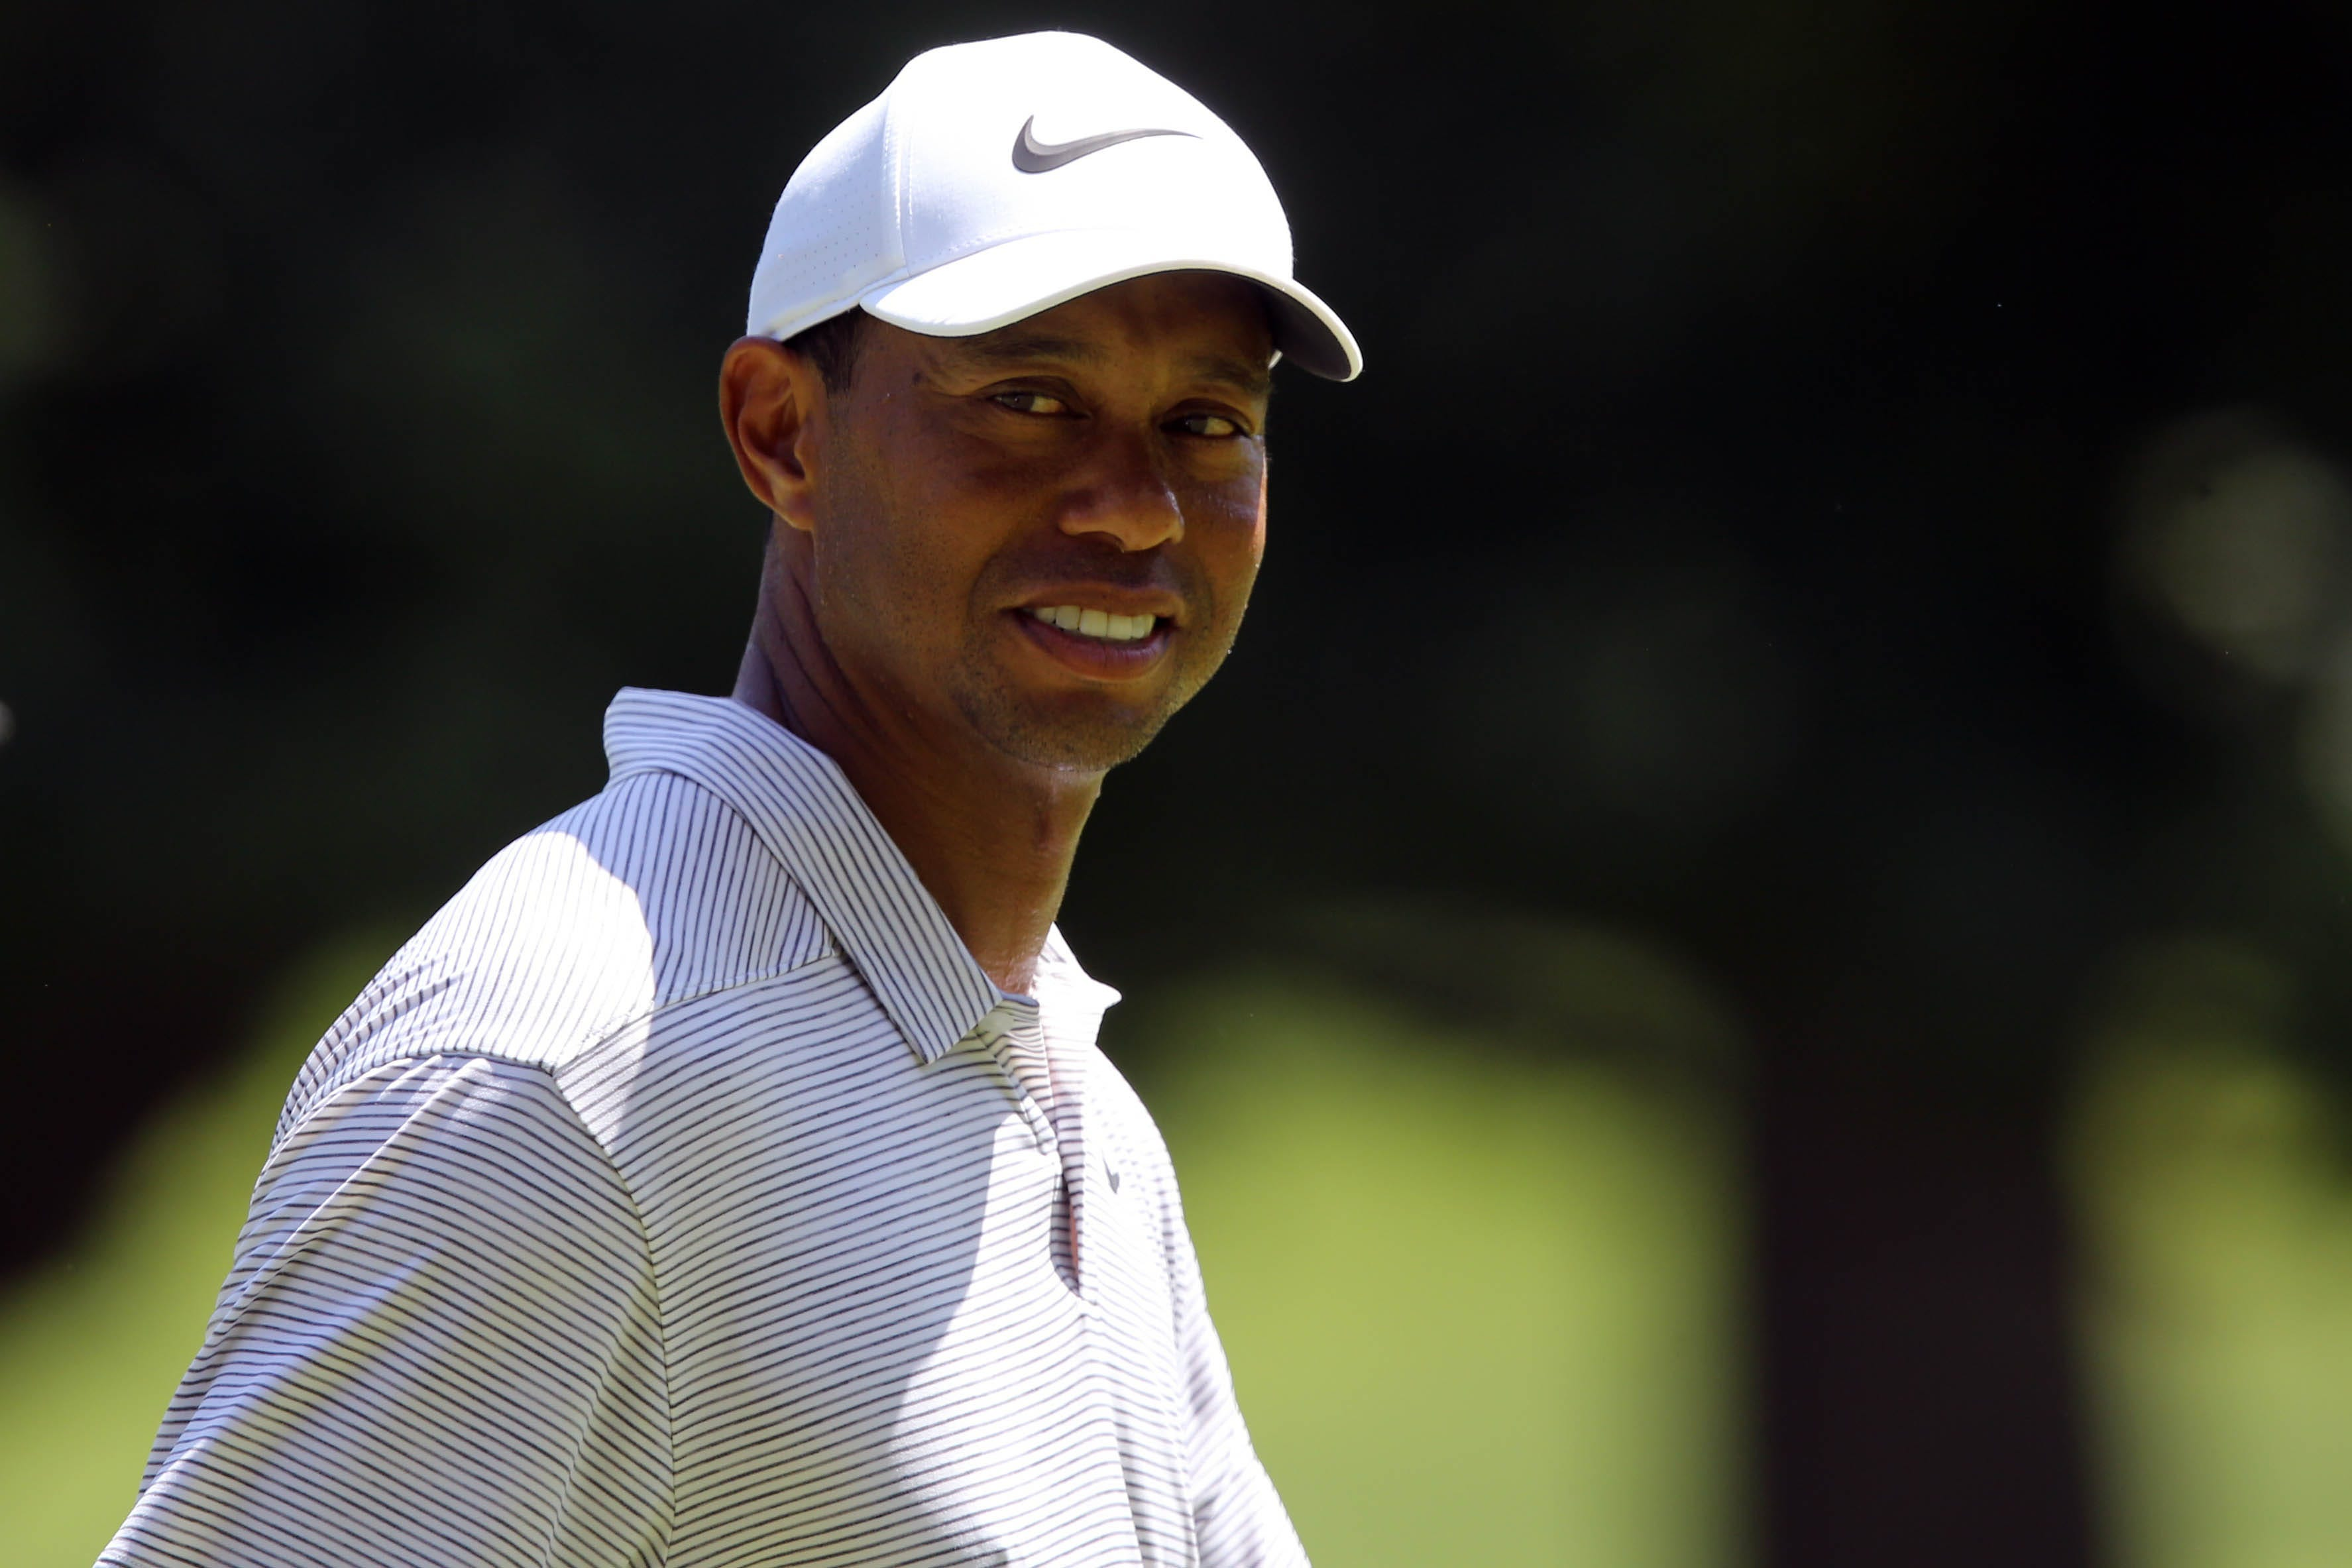 Tiger Woods puts Ryder Cup captain Jim Furyk in potentially 'awkward' position